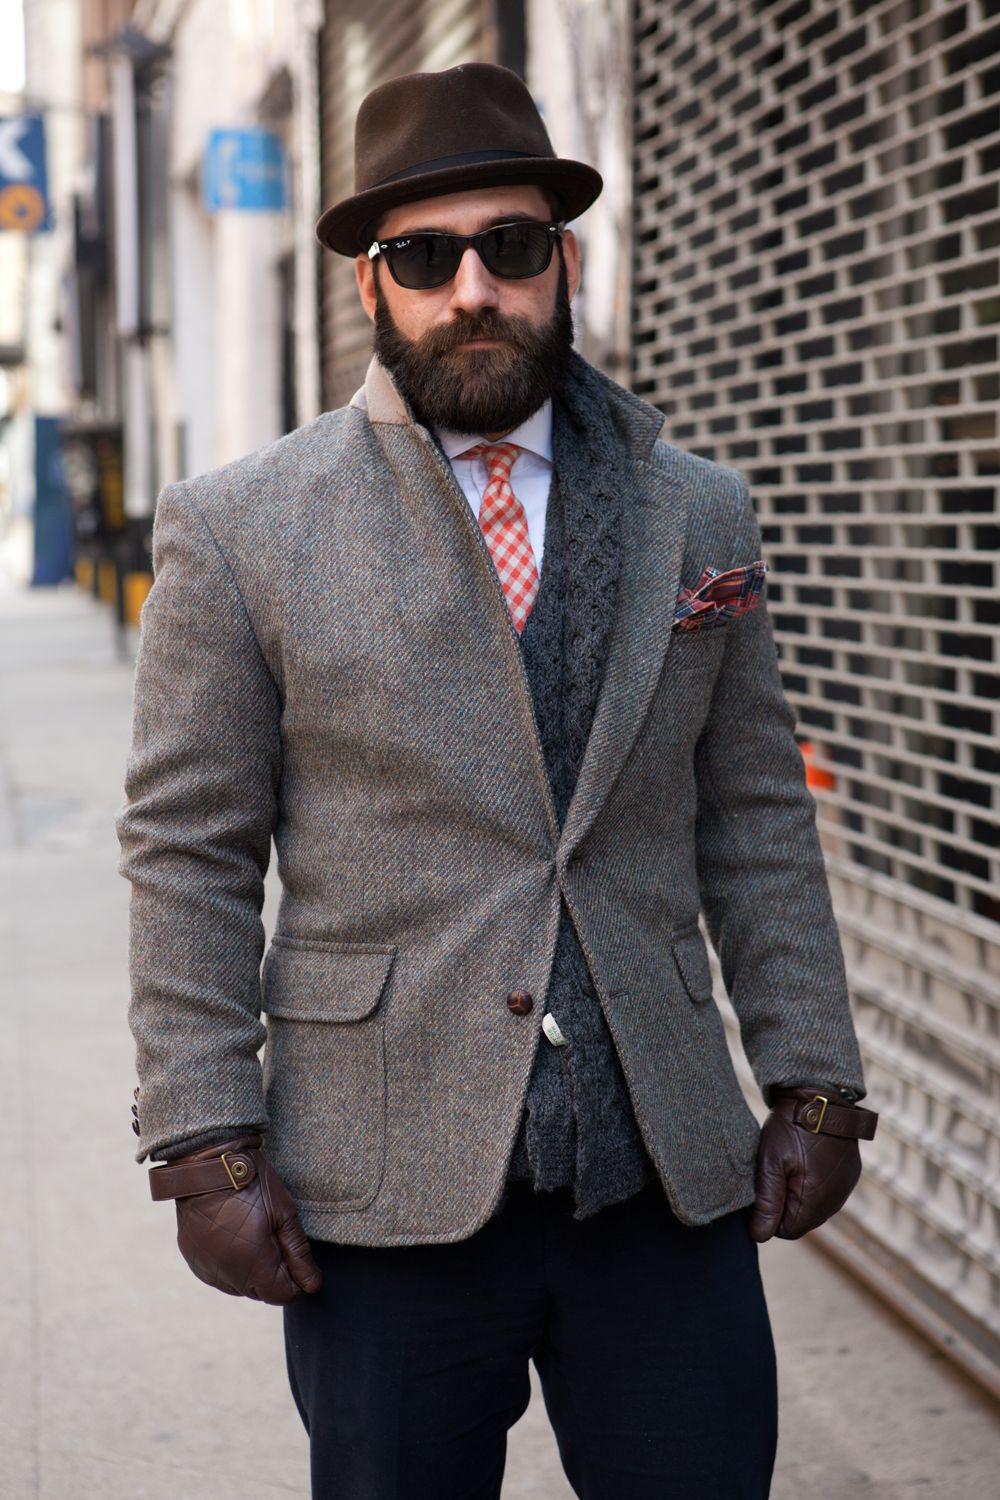 tweed-blazer-men-style-hat-sunglasses-lookbook-streetstyle-nyc ...